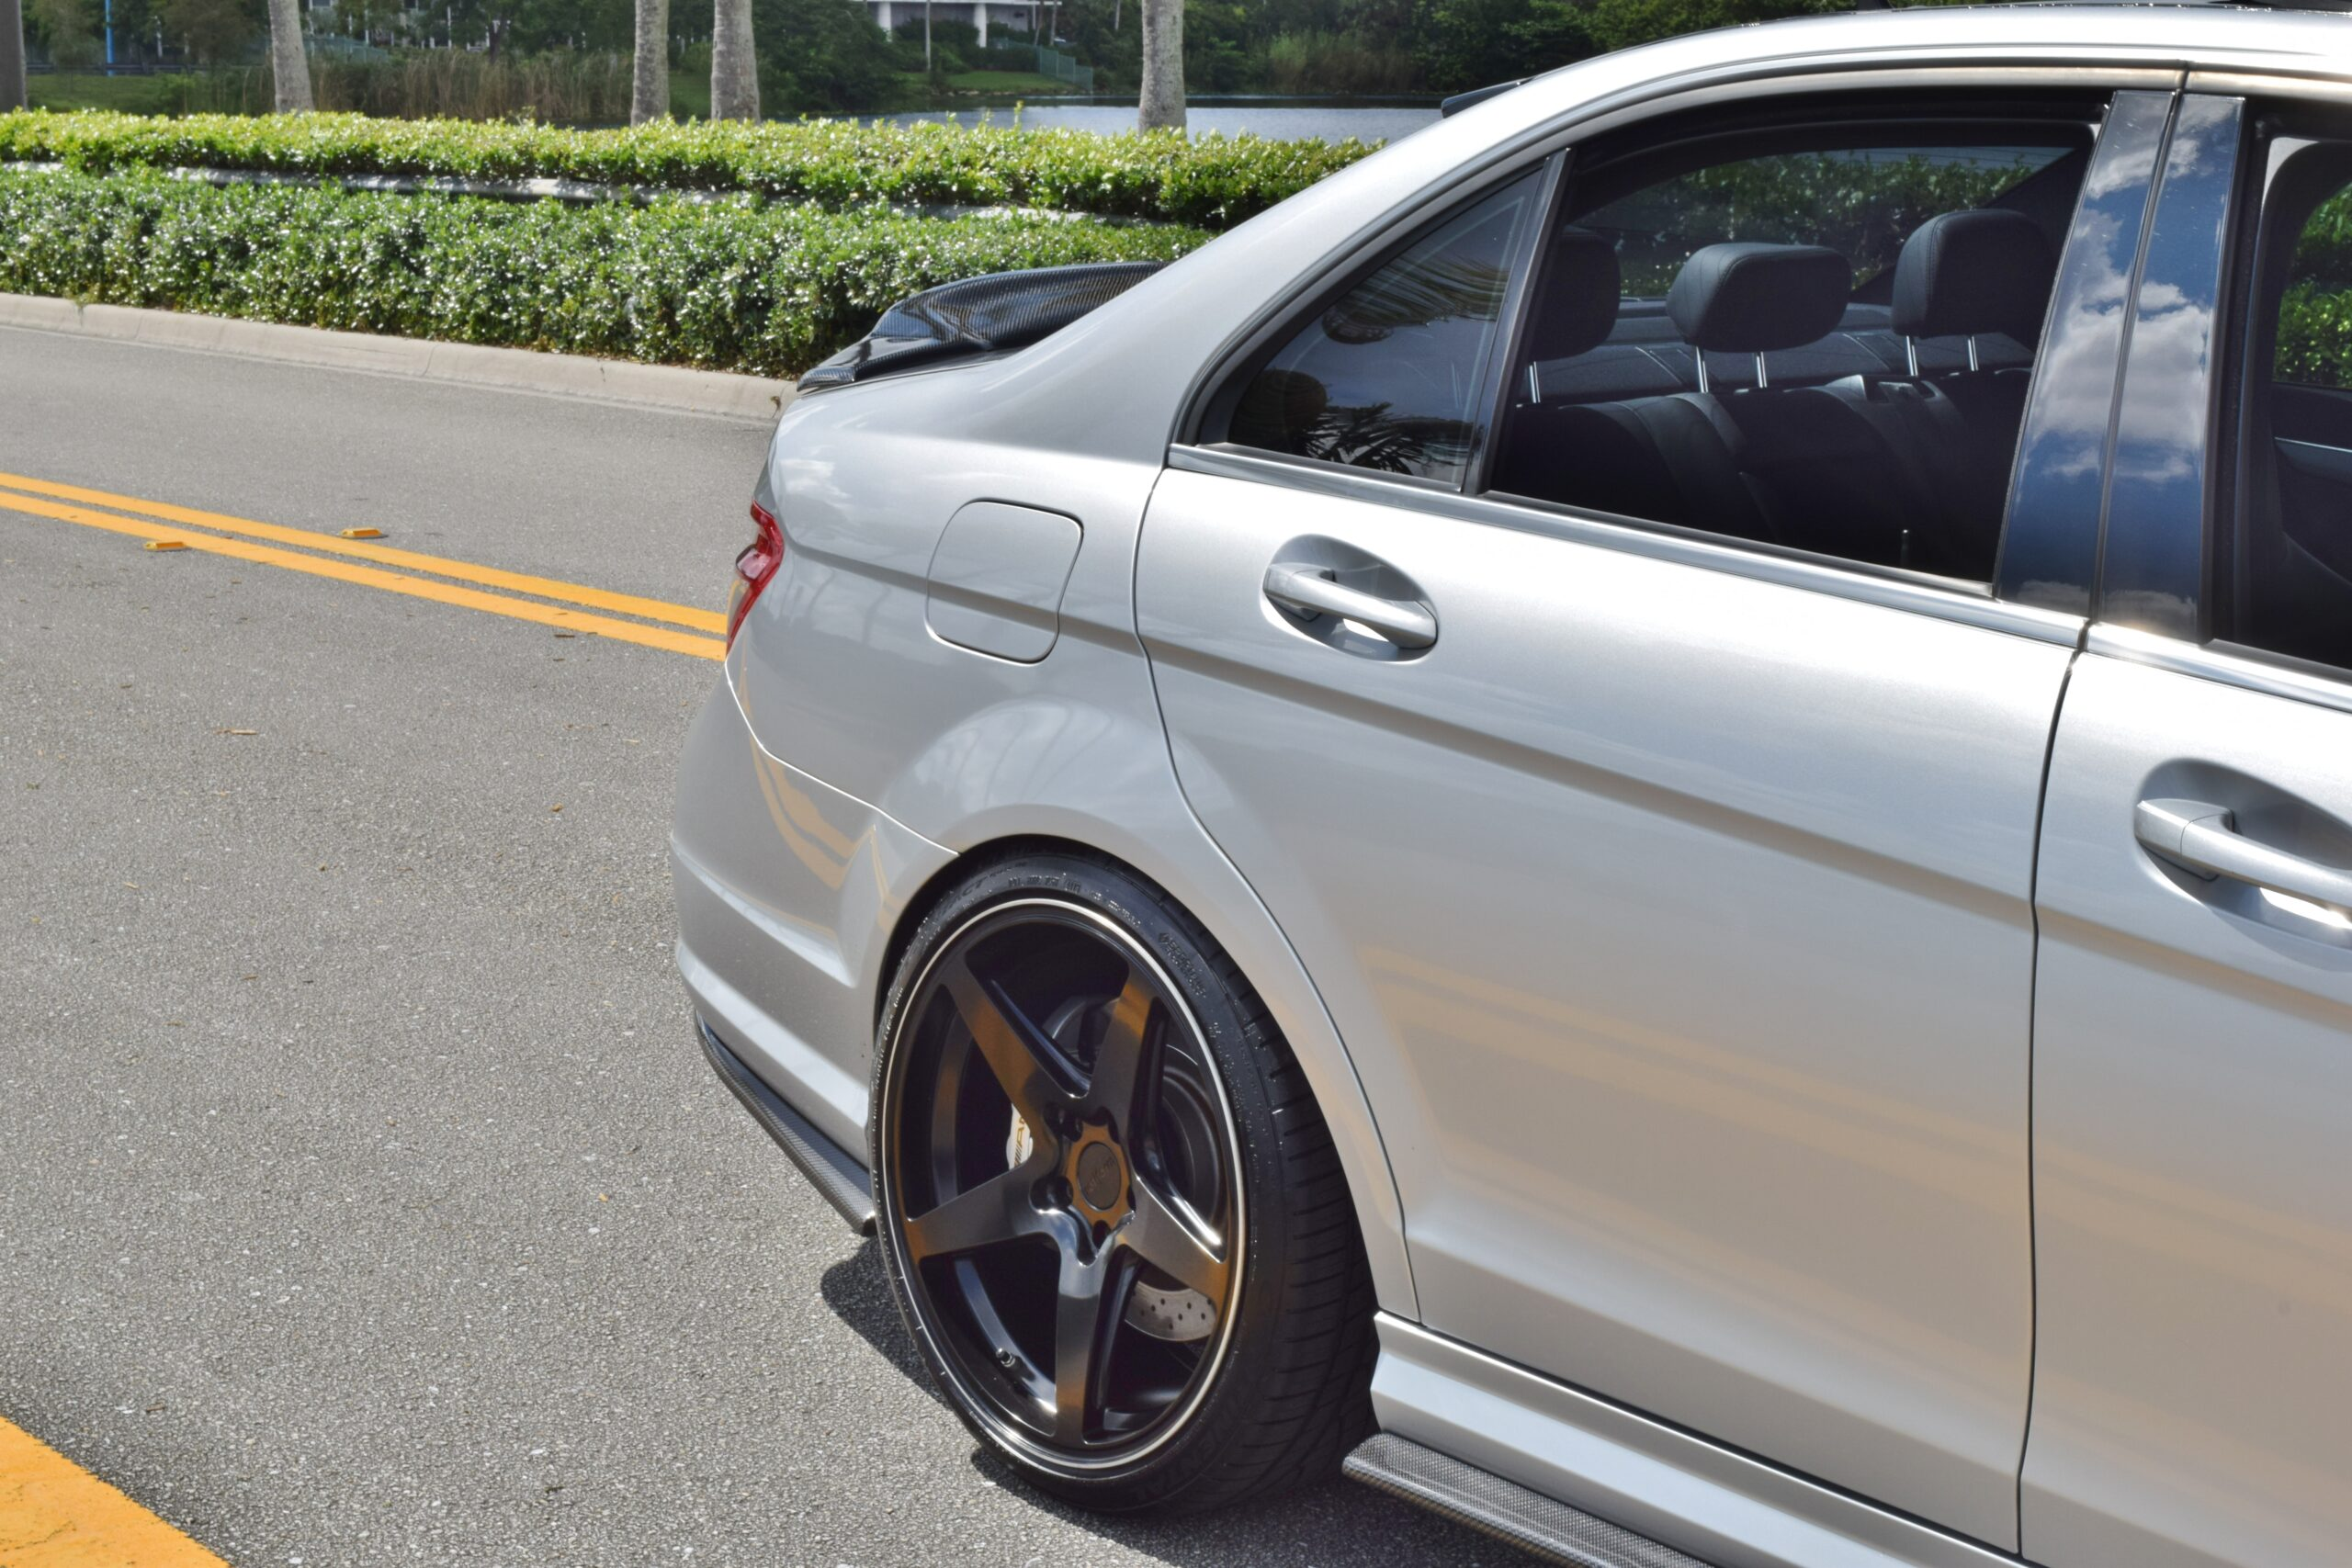 2008 Mercedes-Benz C-Class C63 AMG W-204 -Fully Loaded RENNTECH Tuned- 500+ HP- ONLY 50K Miles Carbon Aero LIKE NEW